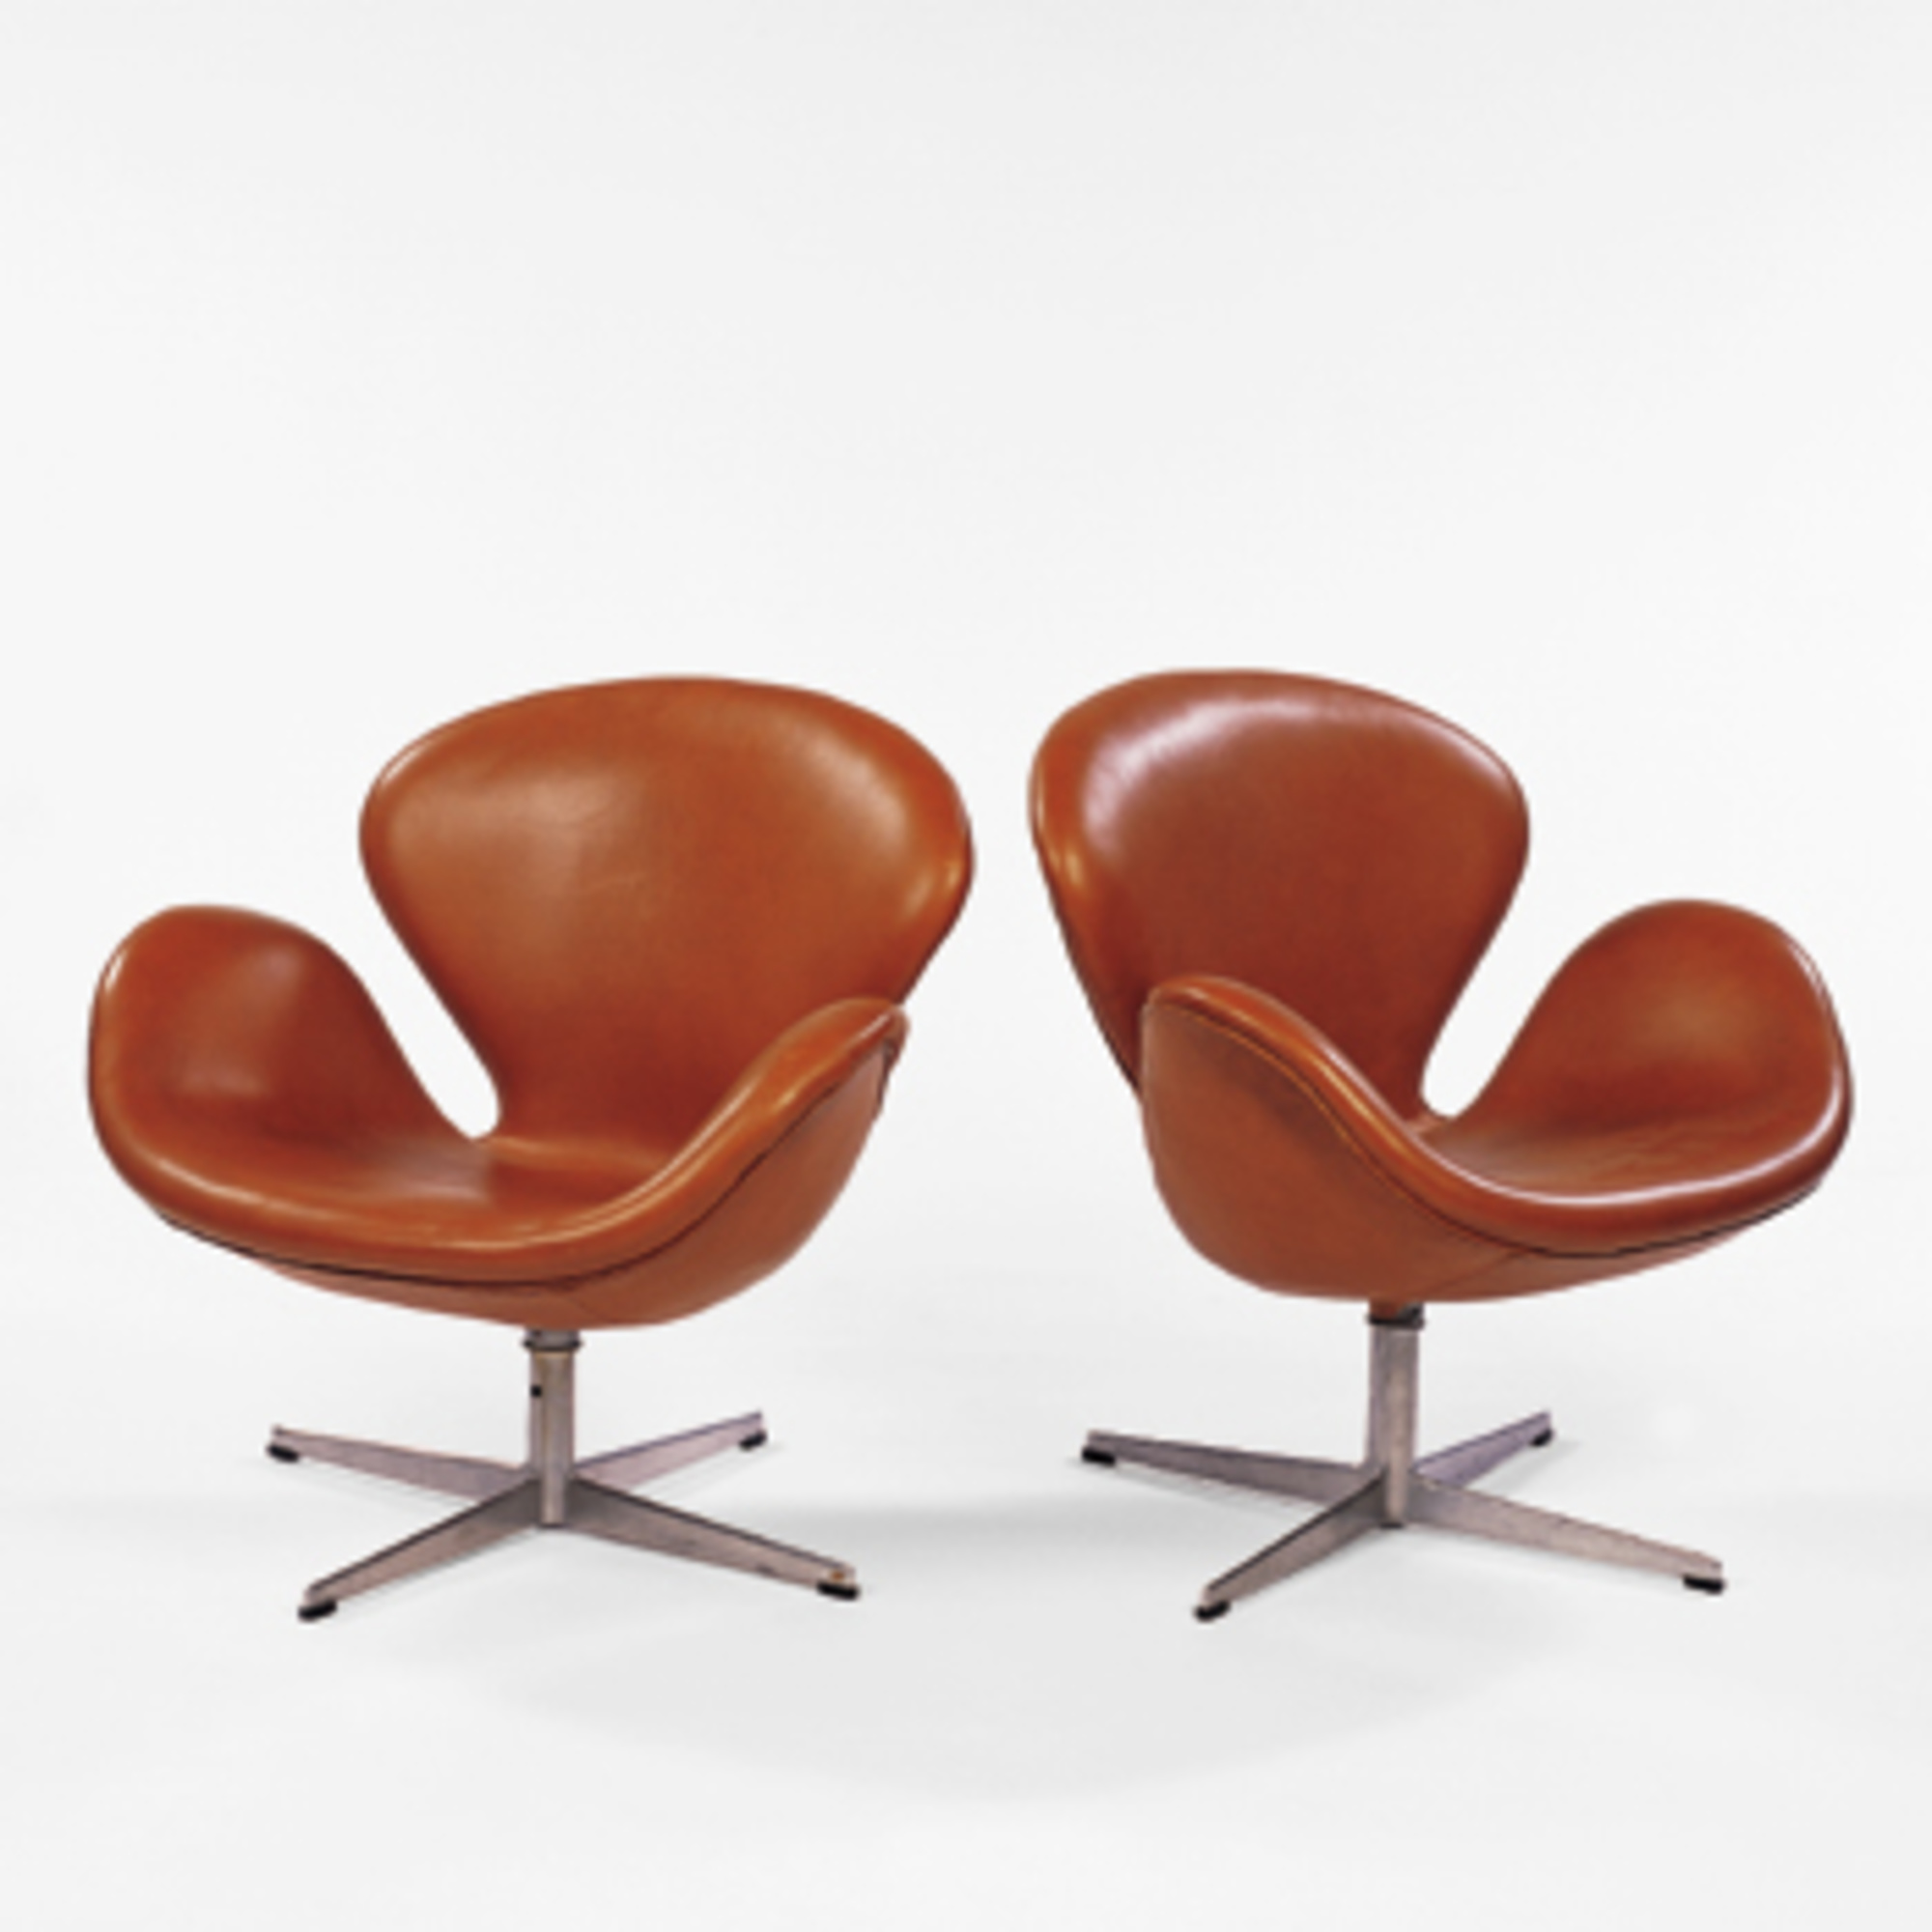 Arne Jacobsen Swan Chair 578: Arne Jacobsen, Swan Chairs, Pair